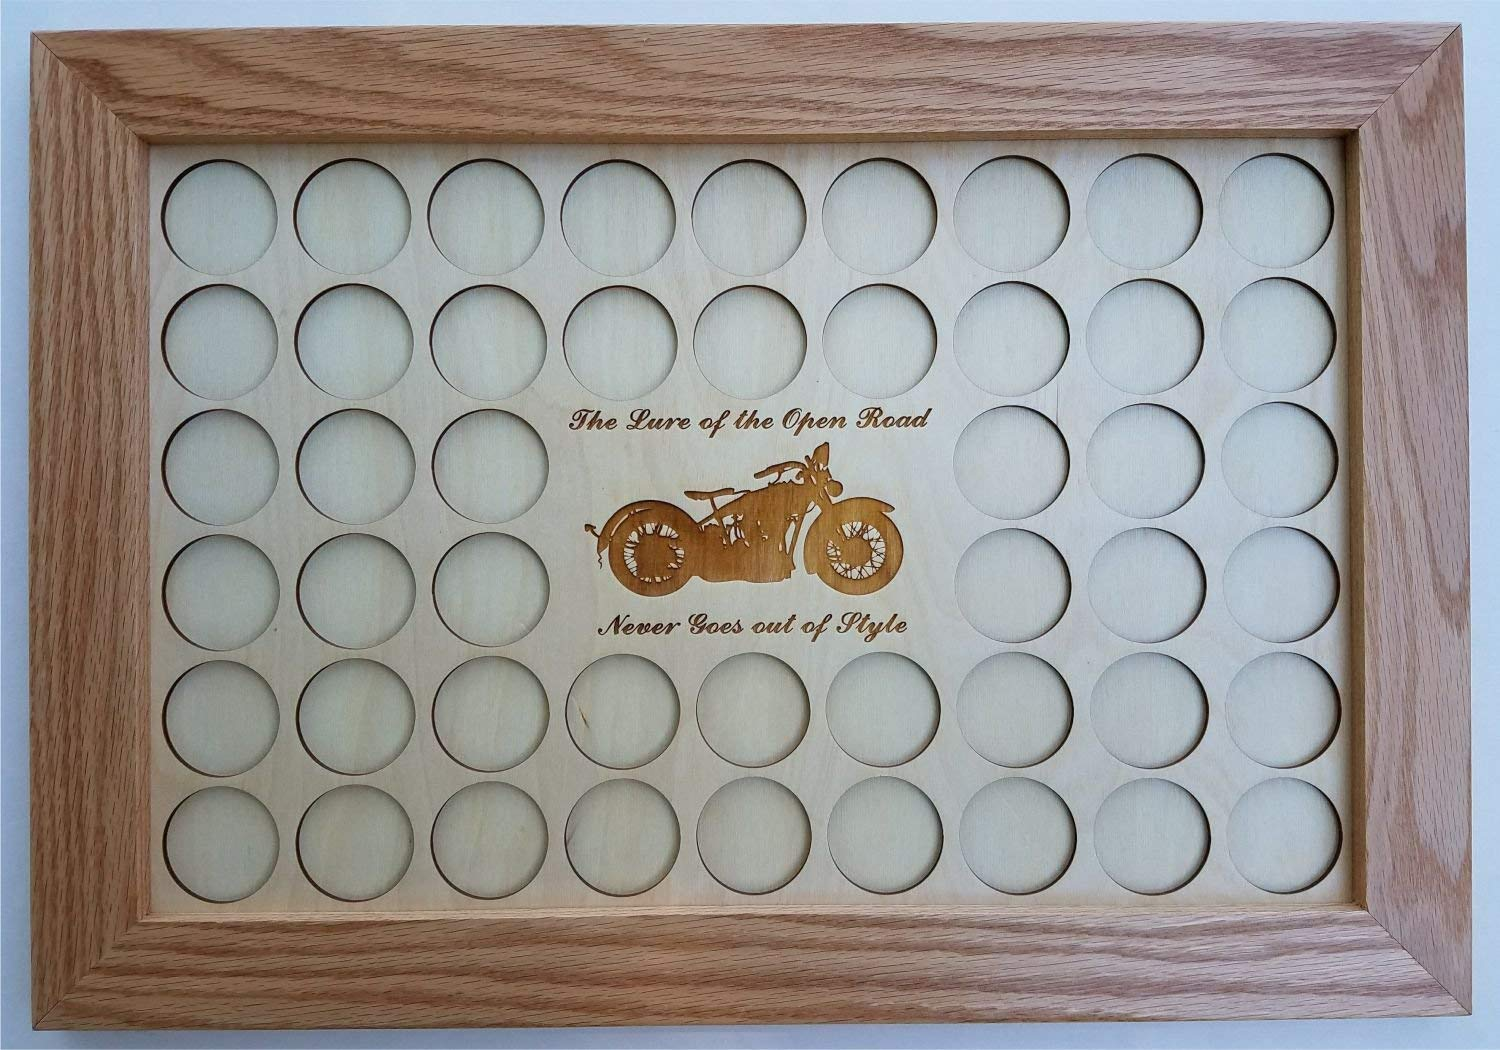 Natural Wood 11x17The Lure of The Open Road Never Goes Out of Style Motorcycle Poker Chip Display Case with Oak Frame and Birch Mat